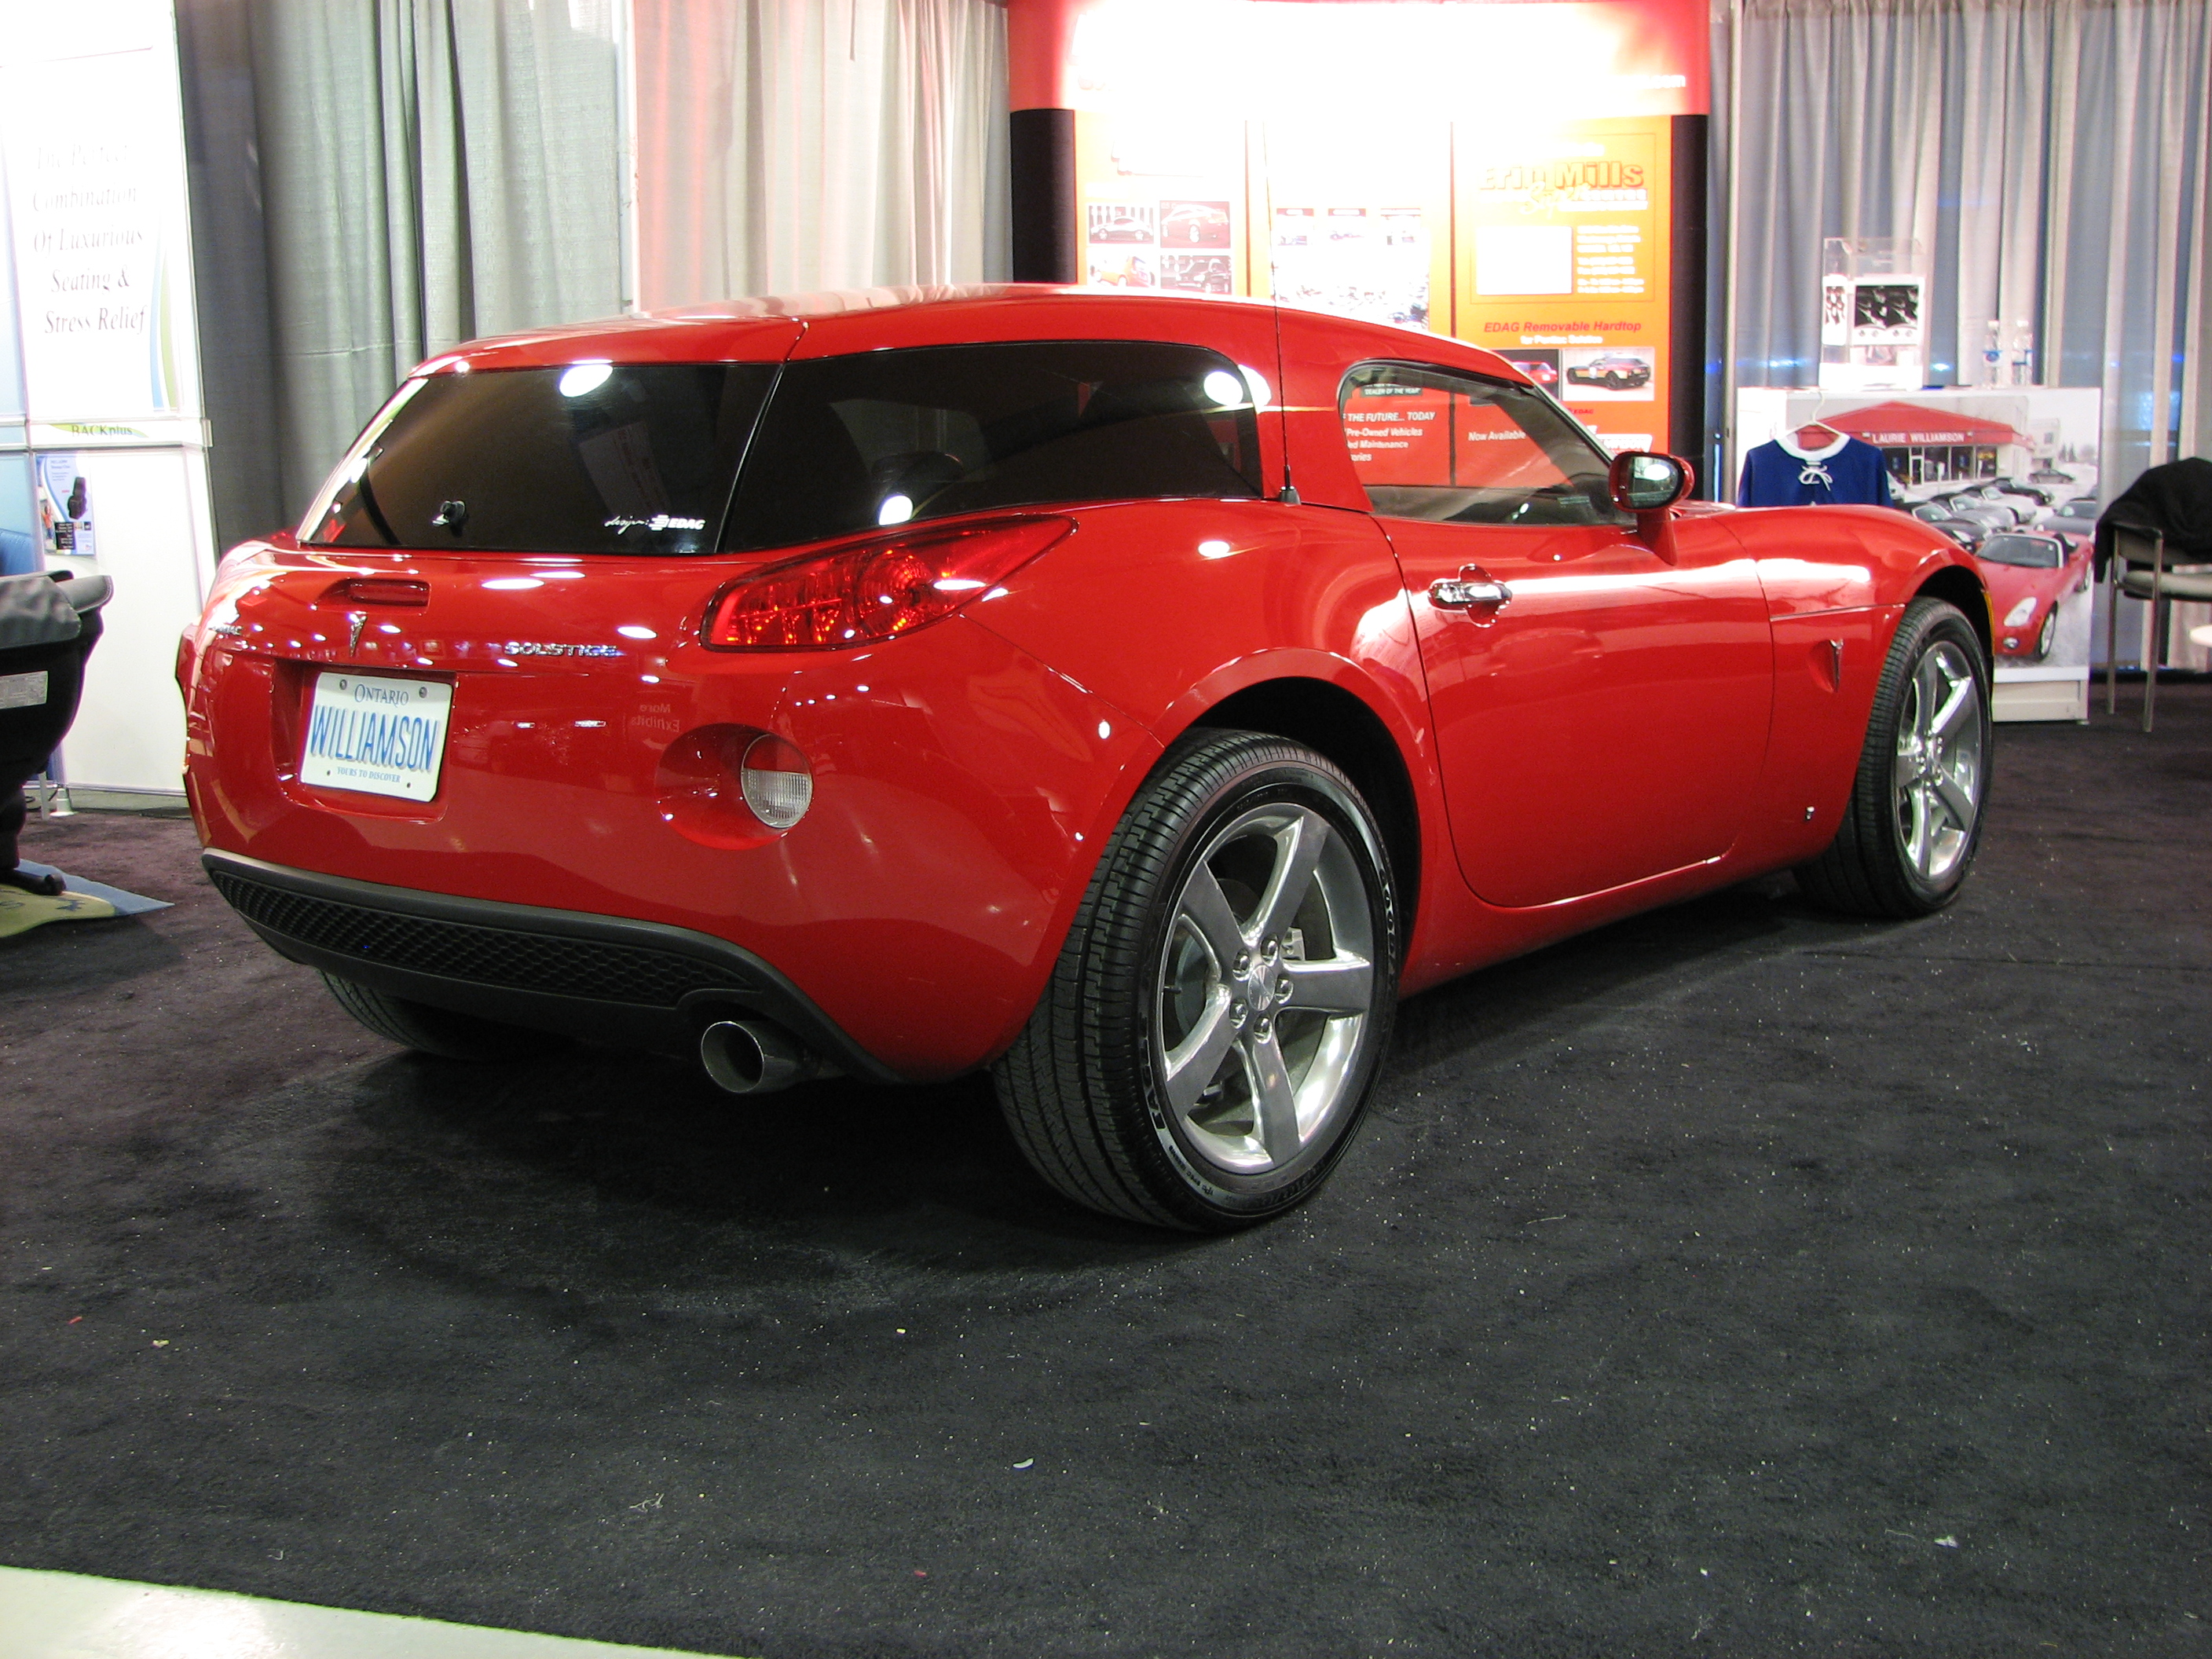 Pontiac Solstice Hardtop | Flickr - Photo Sharing!